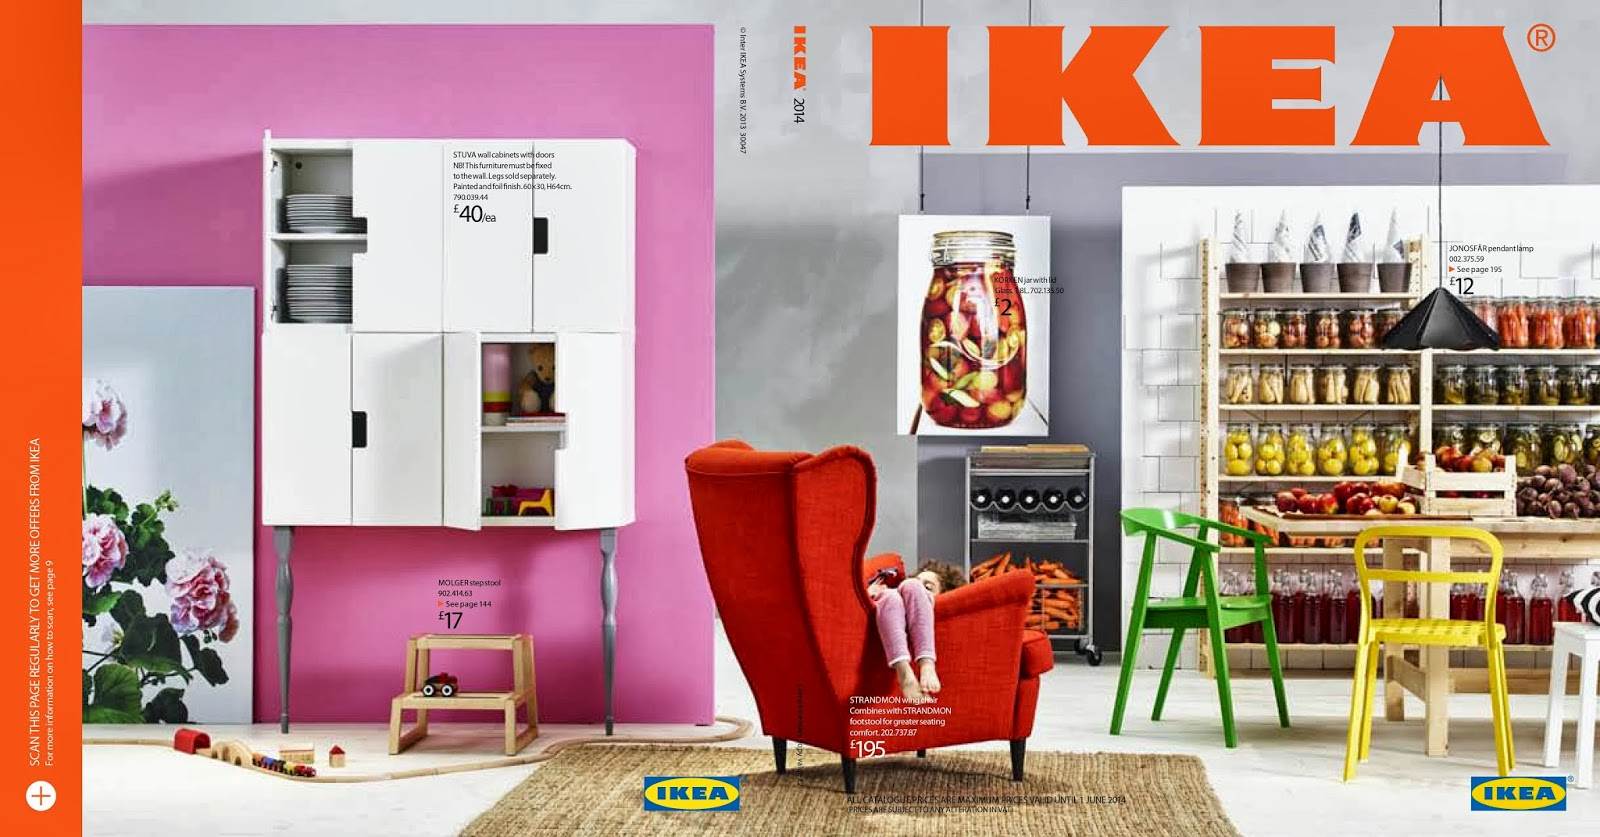 Guy Parker Rees Painting The Ikea Catalogue Cover